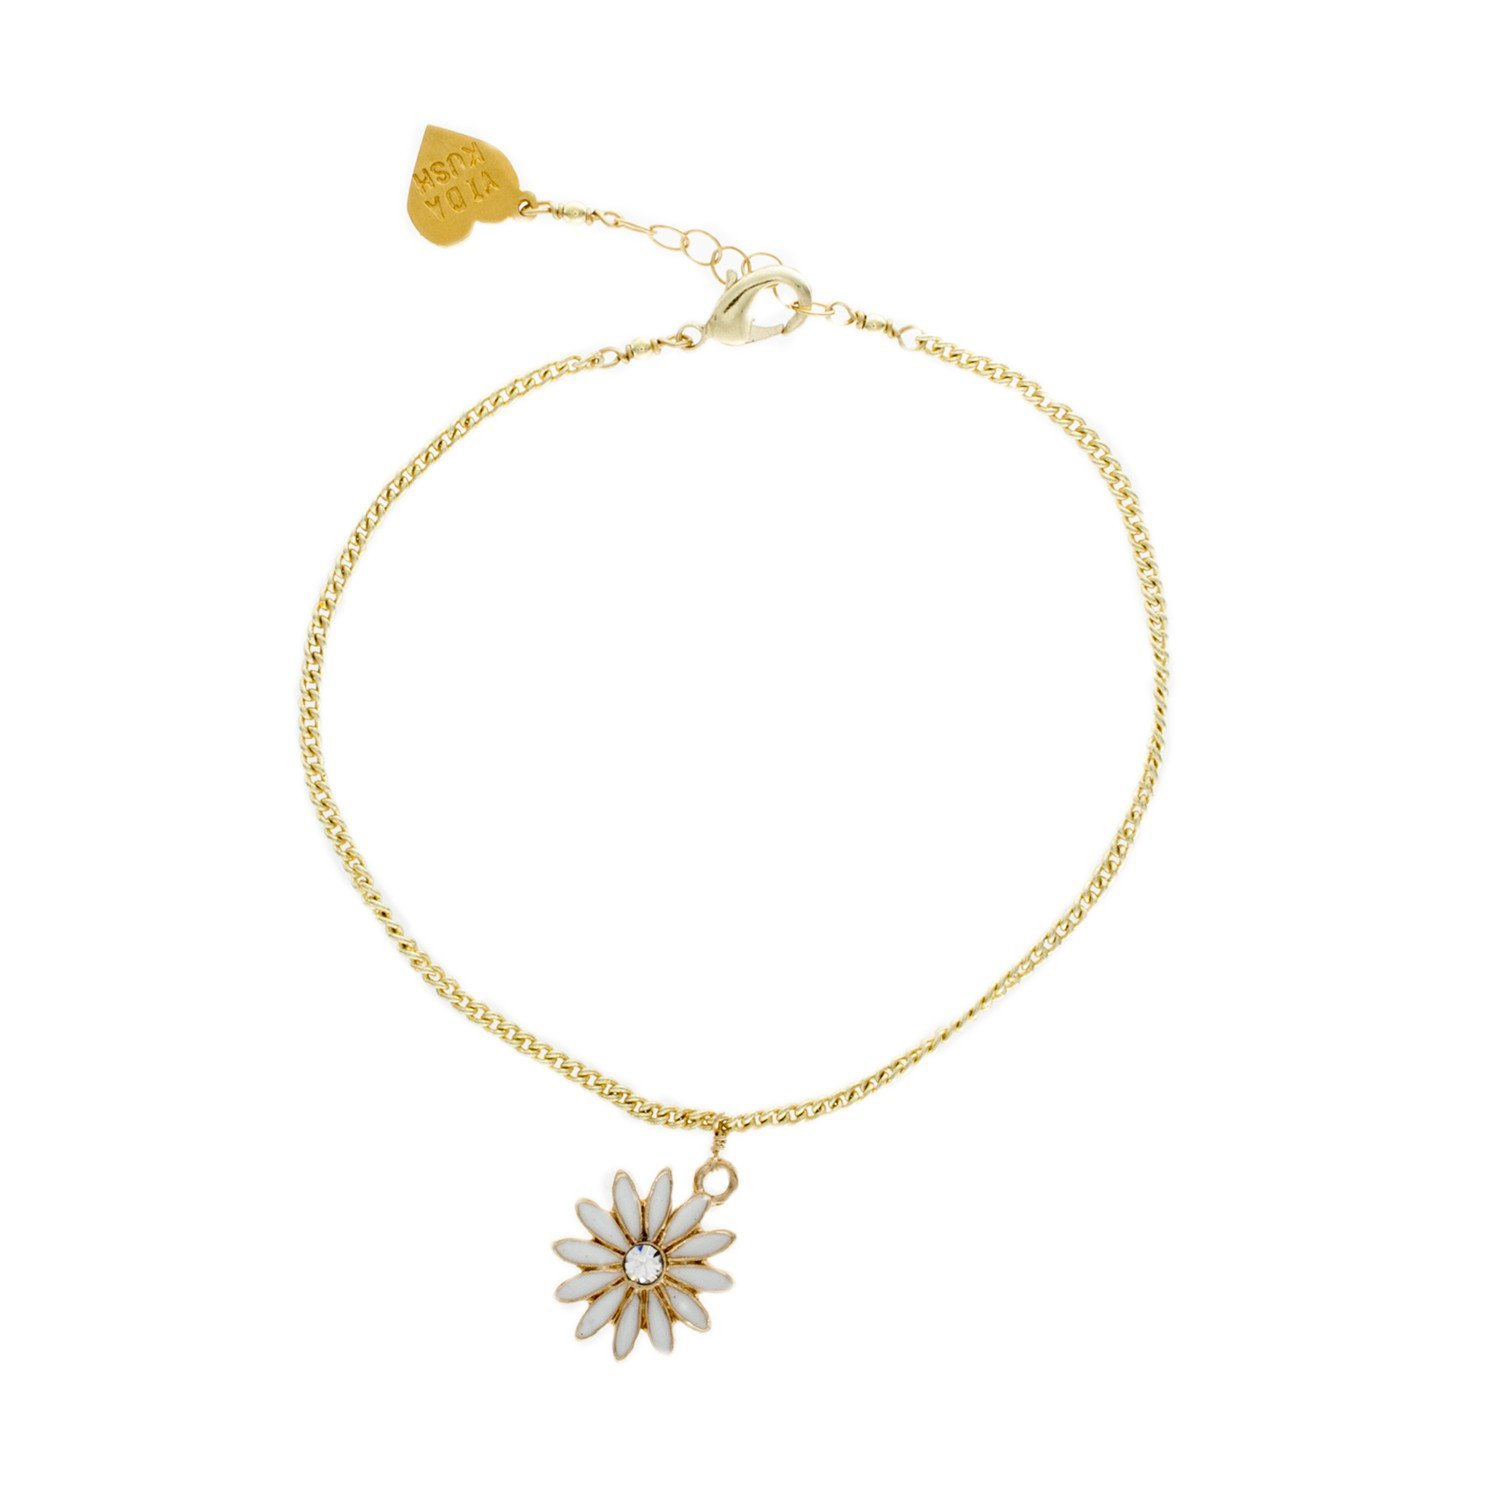 Image of Daisy Charm Anklet